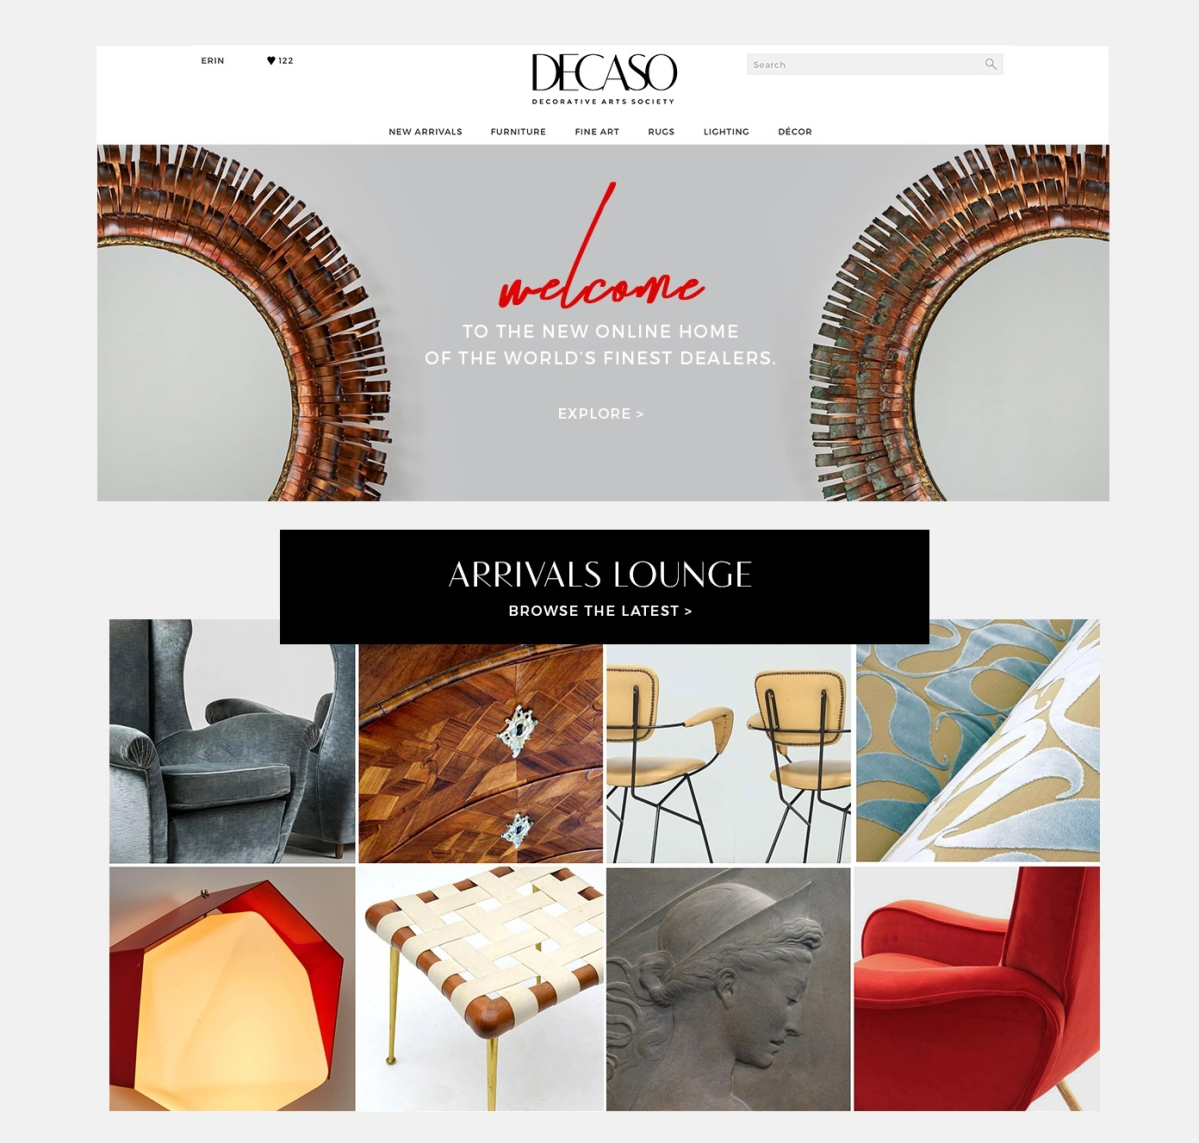 More 32,000 listings can be found on DECASO, all of the them from trusted and experienced dealers. The new platform aims to amplify high end goods to the interior design trade.